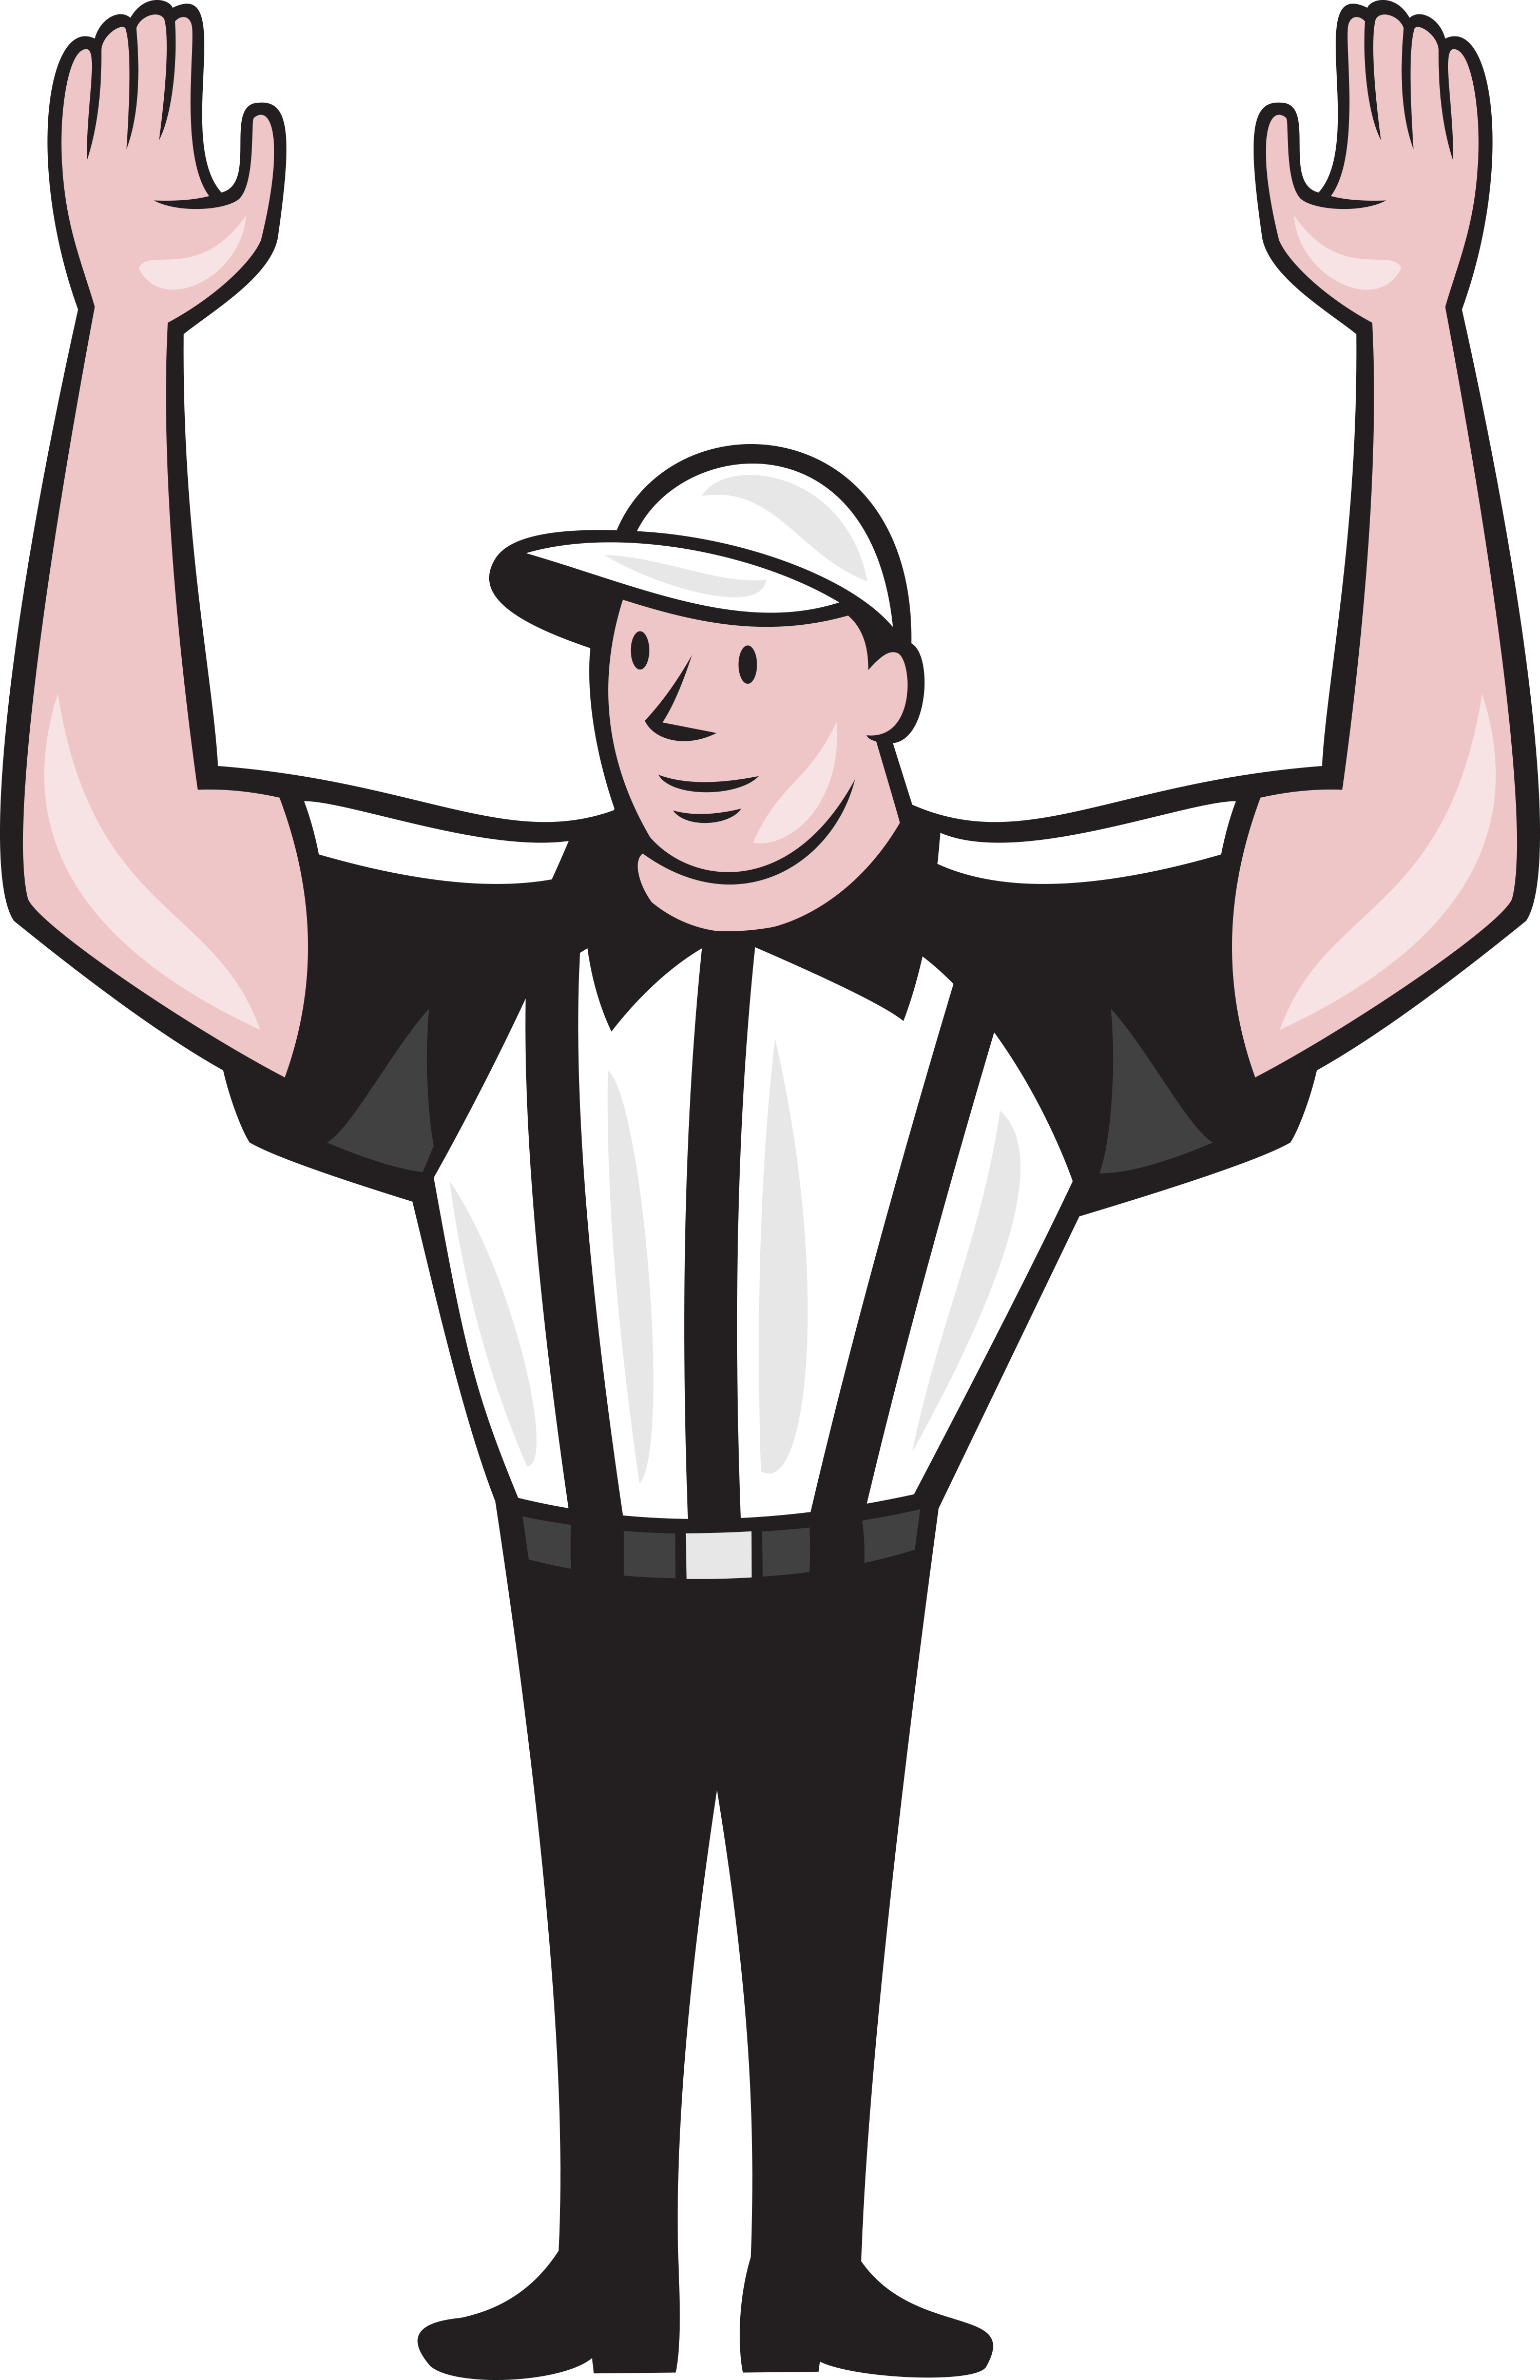 american-football-referee-frnt-touchdown-ol-051414 - Ref PNG